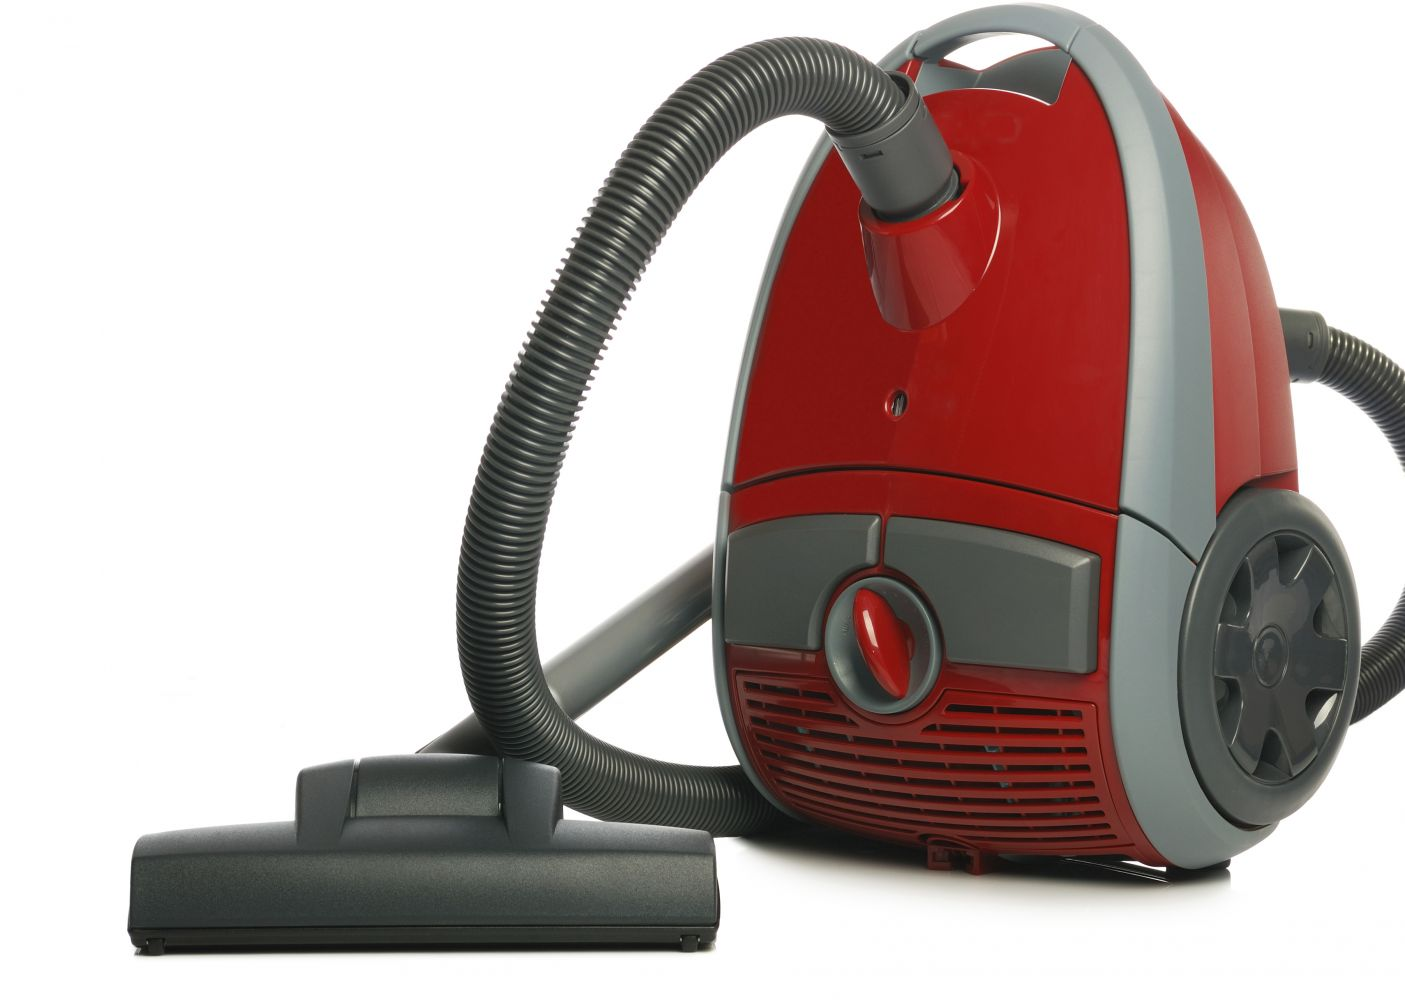 Large range of used appliances including vaccuum cleaners in Anchorage, AK